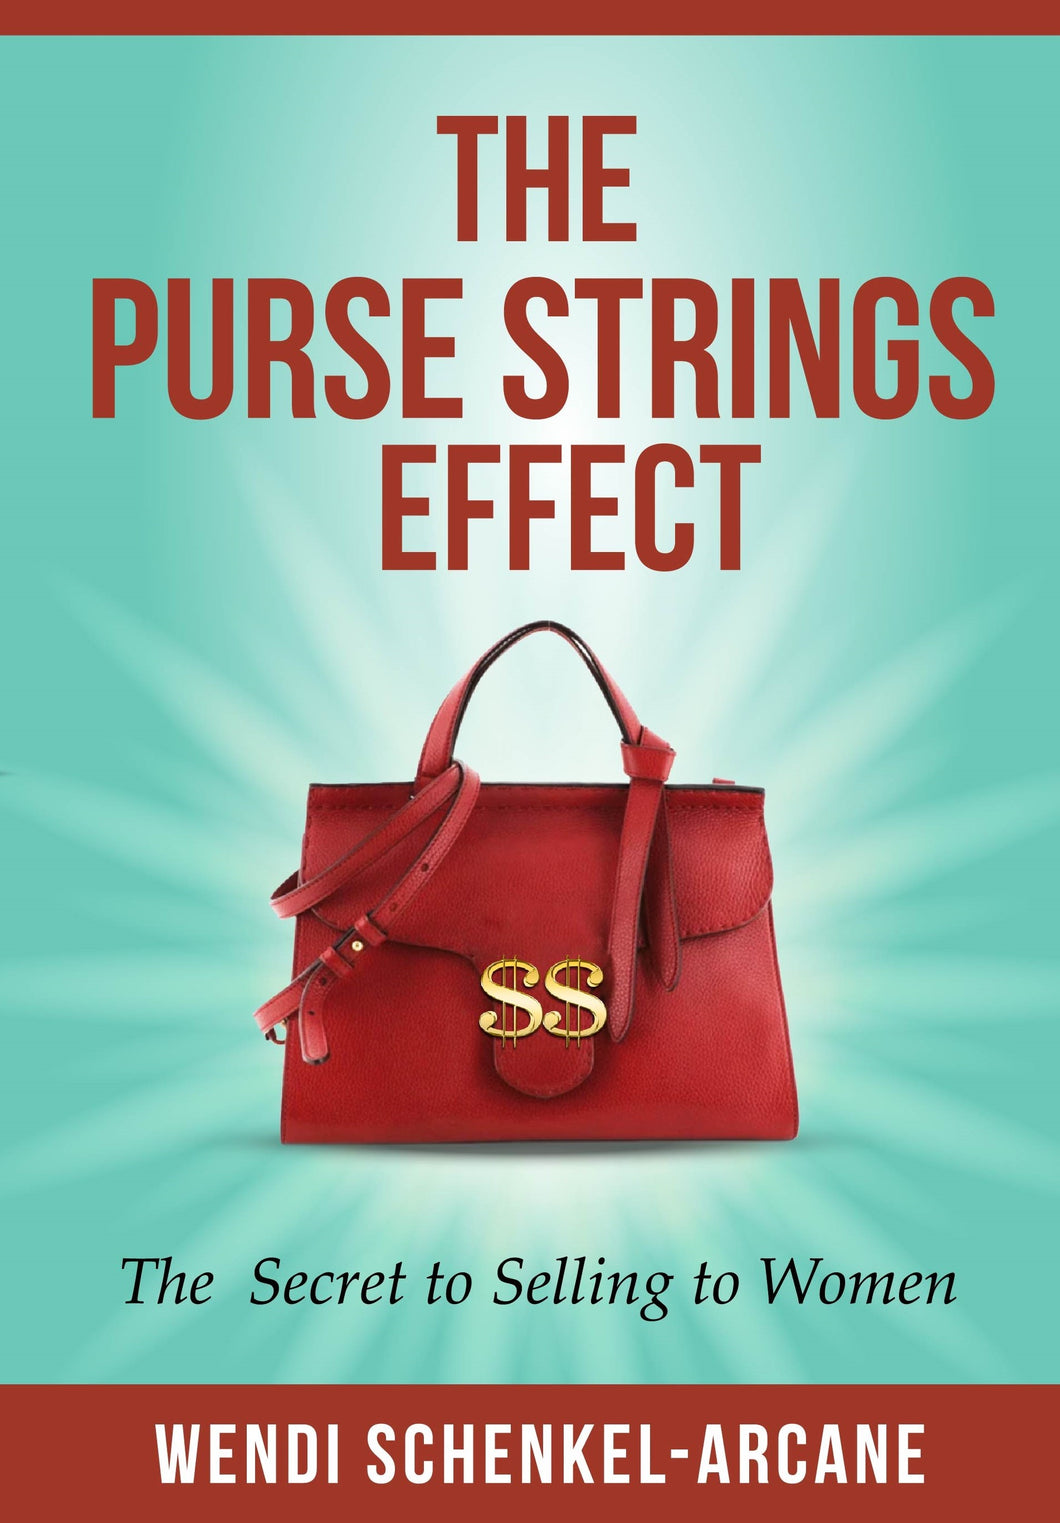 The Purse Strings Effect™ The Secret to  Selling to Women Wendi Schenkel-Arcane